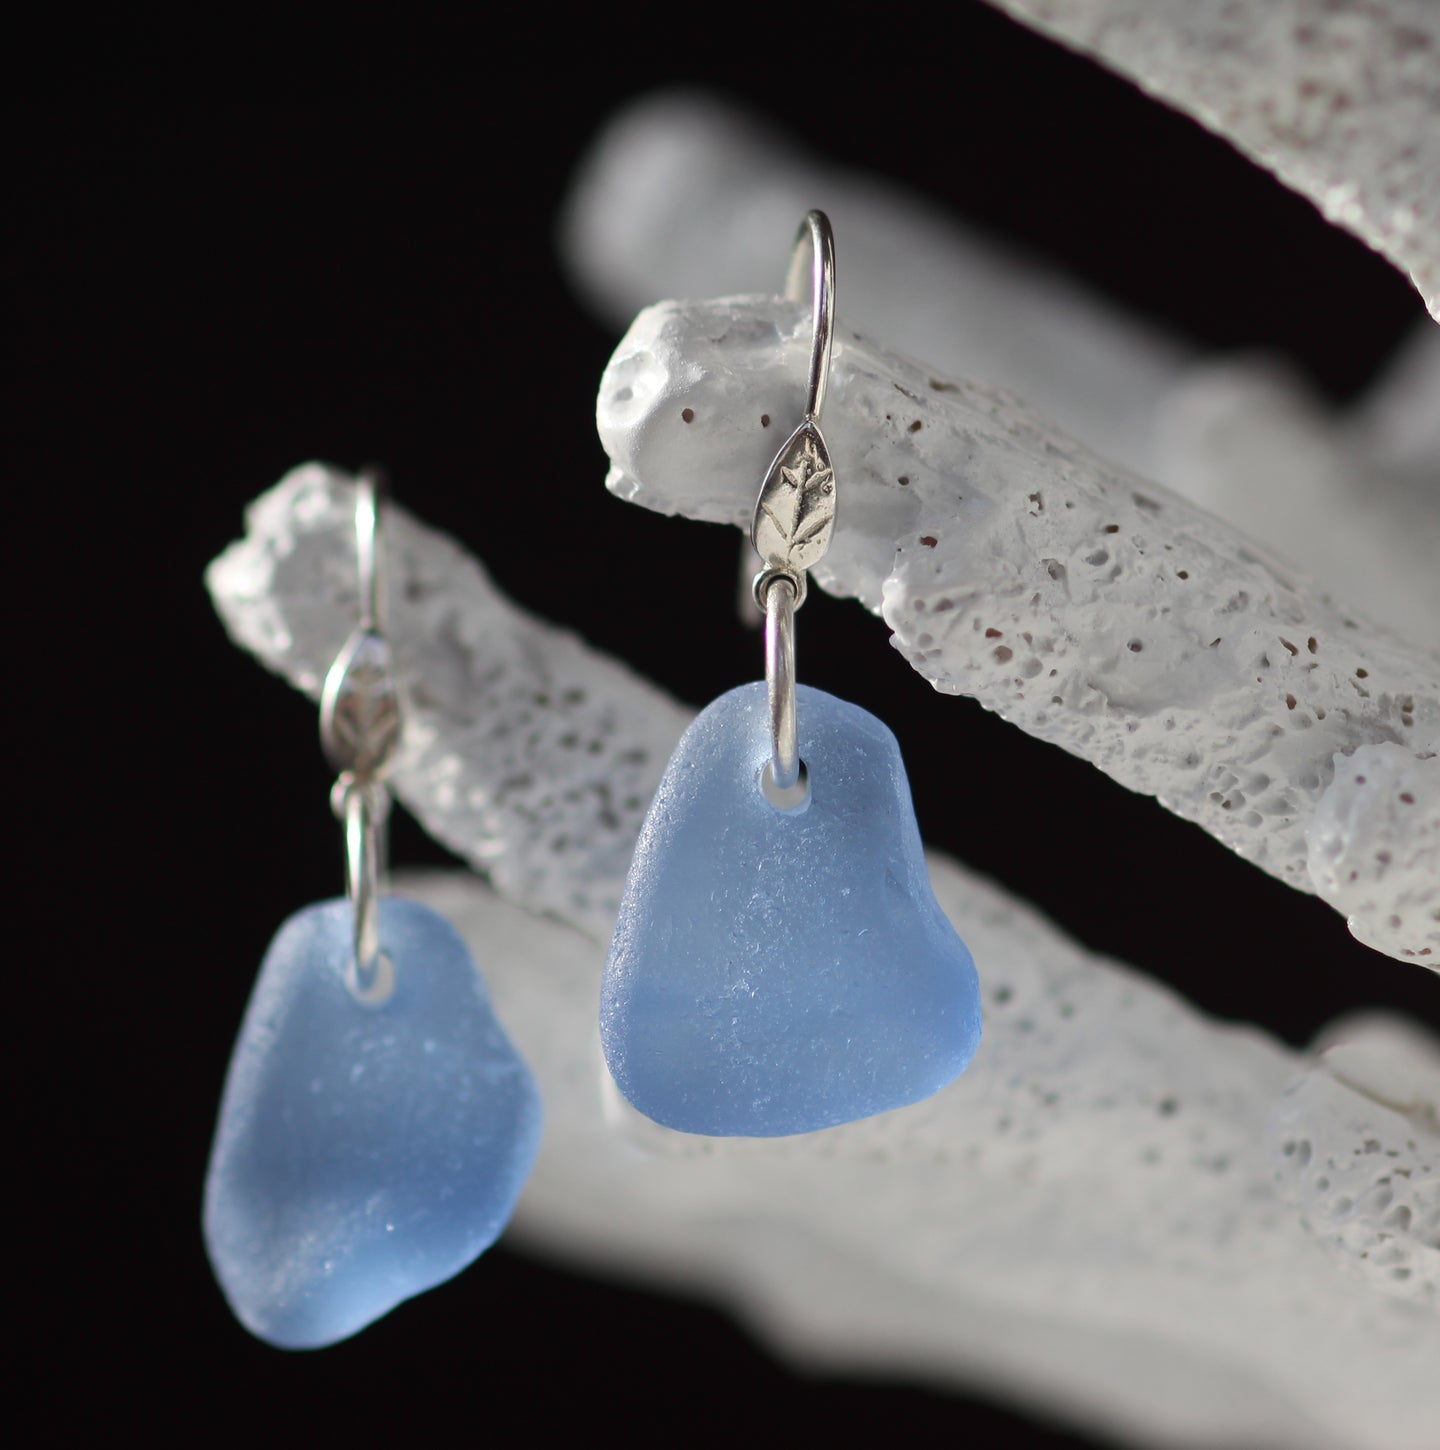 Sea glass jewelry, handmade in Nova Scotia by Sea Glass Designs